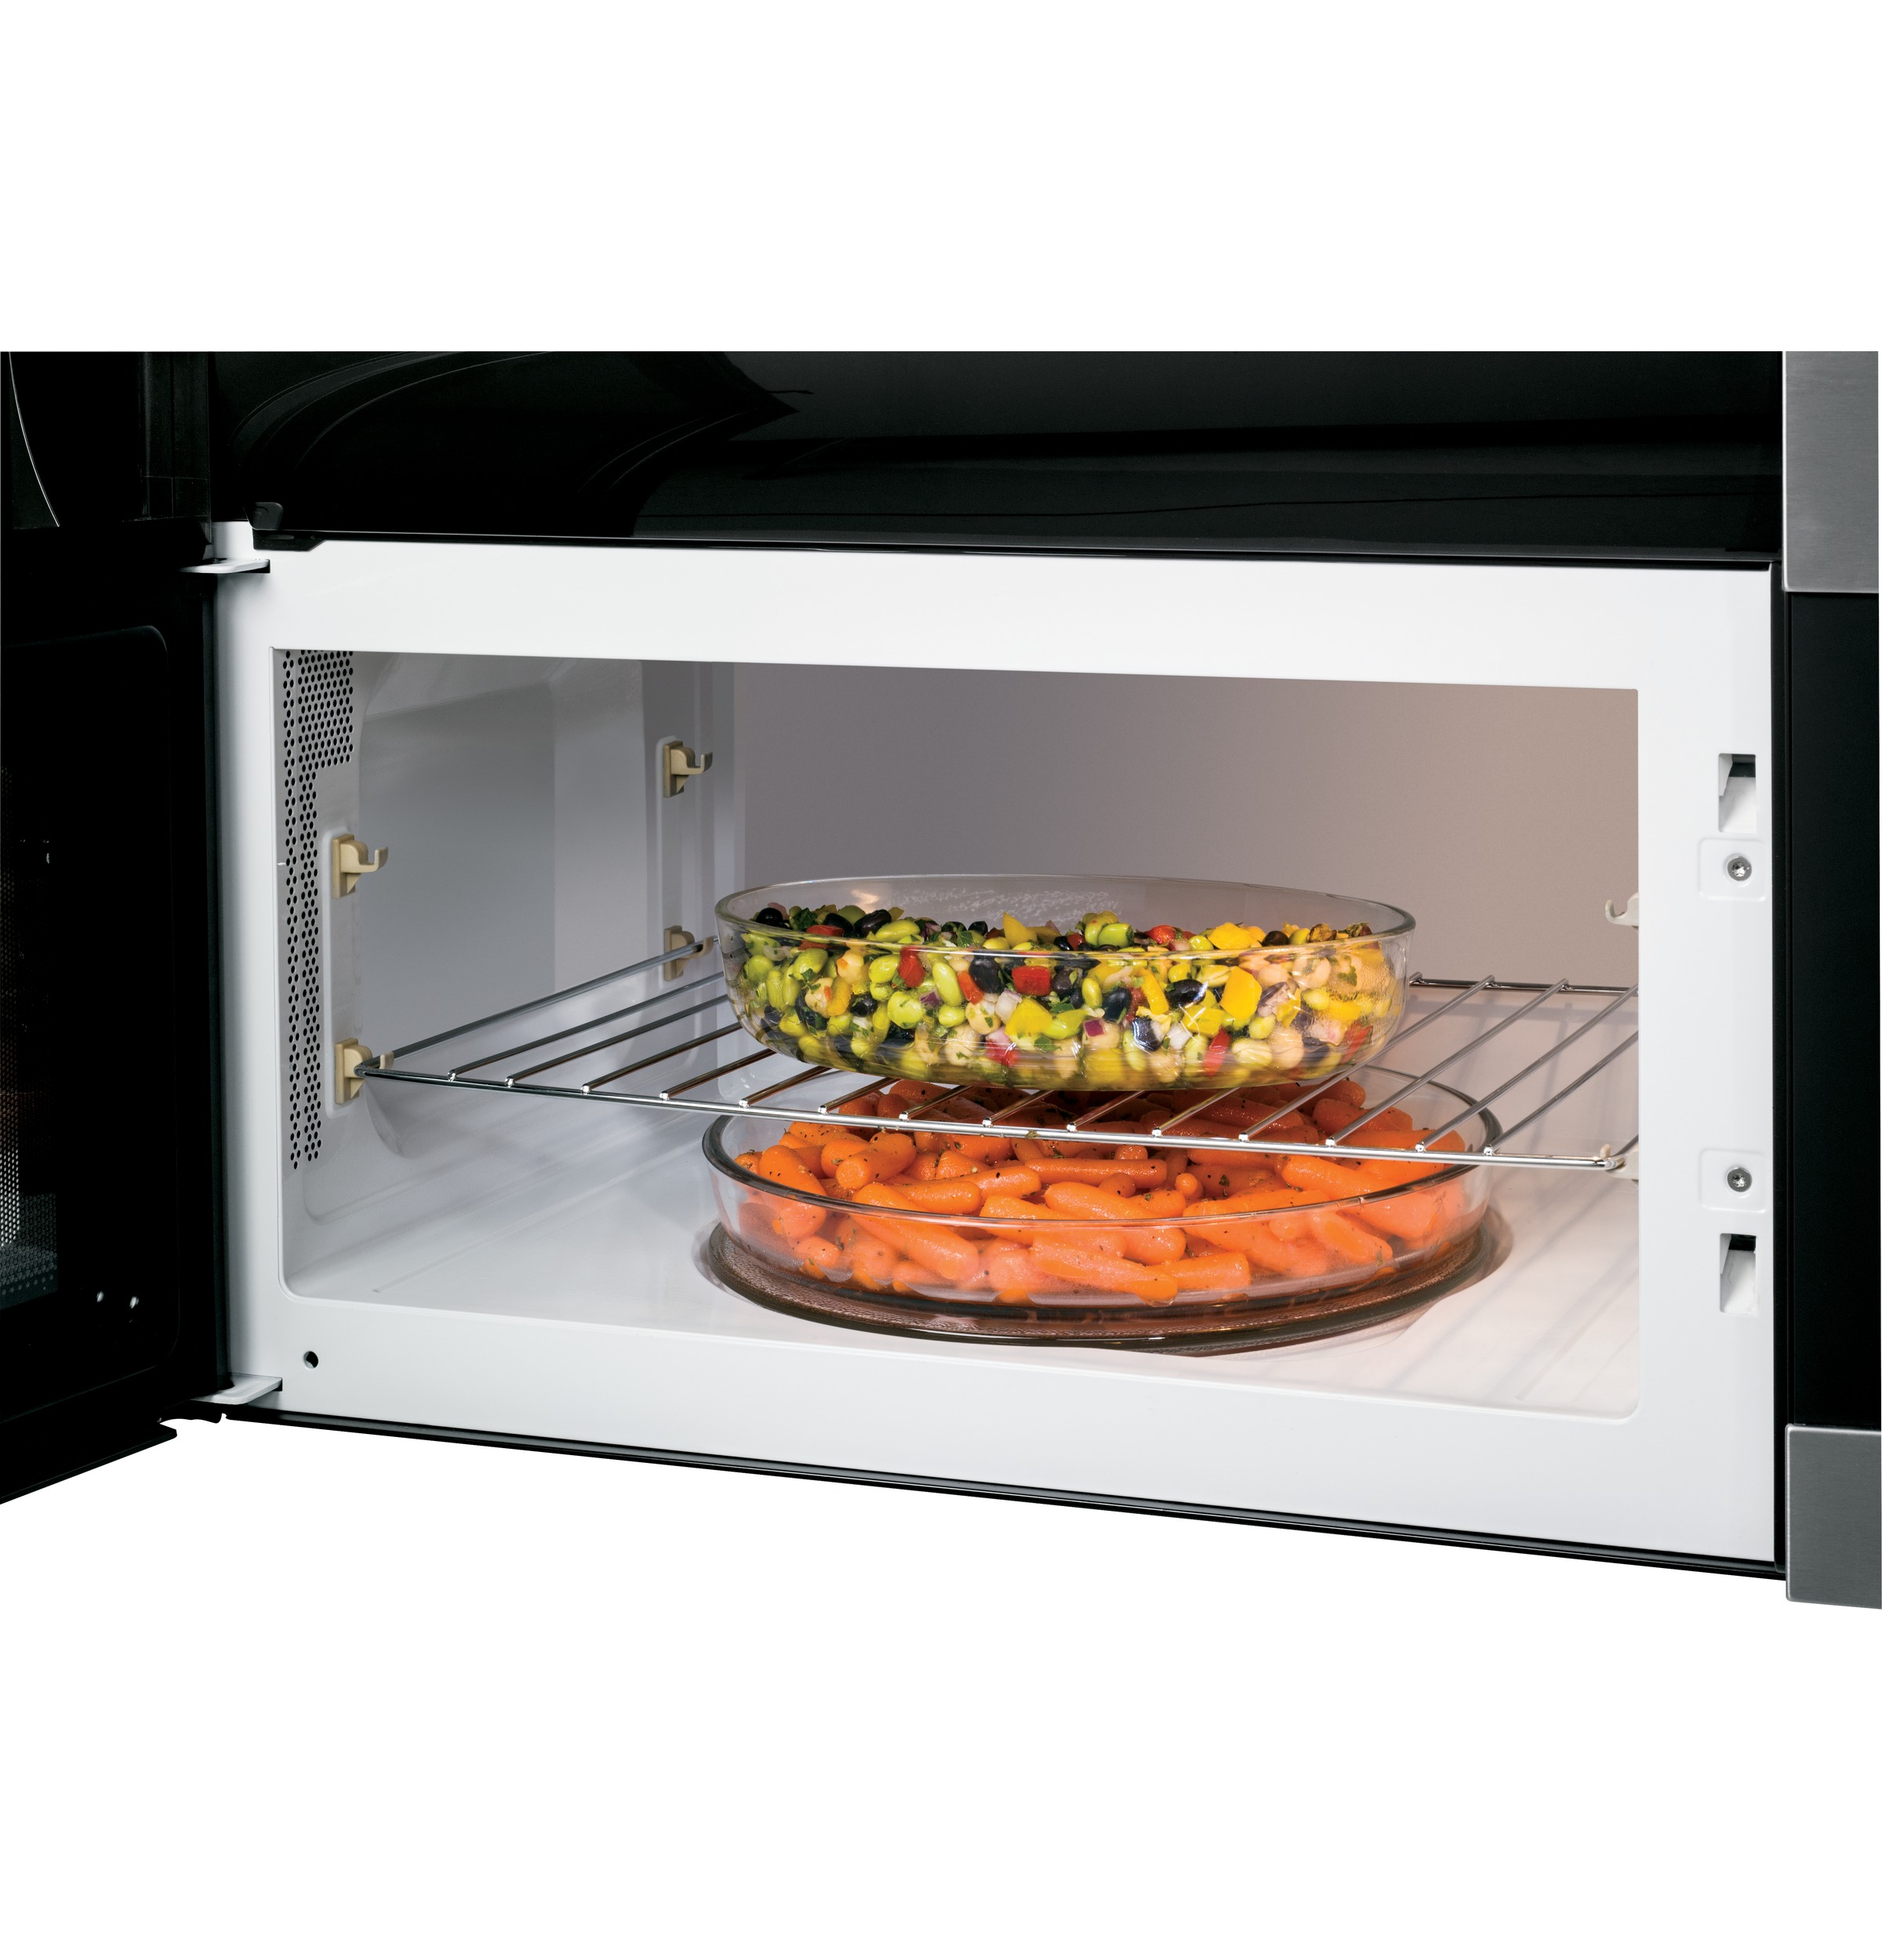 GE Appliances 1.7 Cu. Ft. Over-the-Range Sensor Microwave Oven - Stainless w/ Black Trim